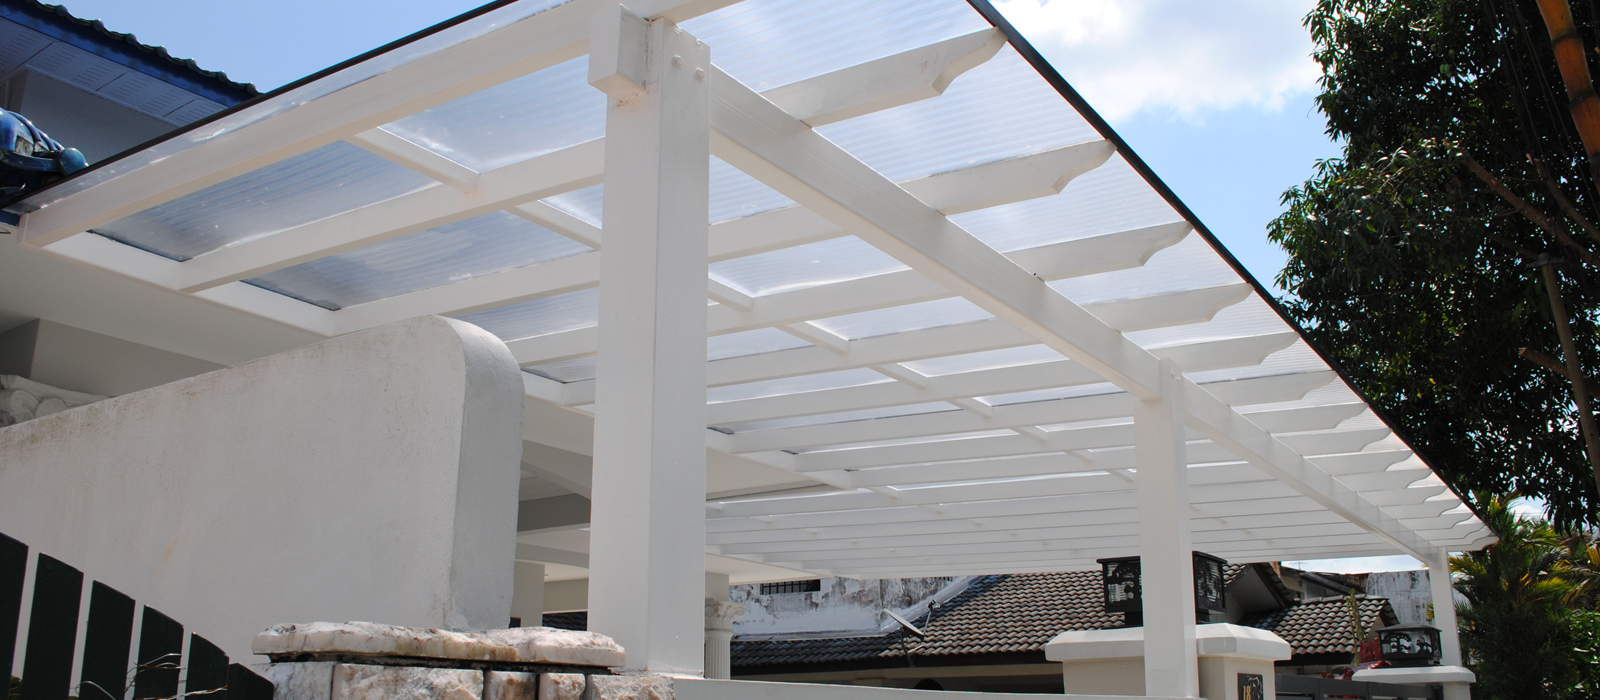 Model Awning Rumah Roofing Tiles Malaysia Polycarbonate Awning Glass Skylight